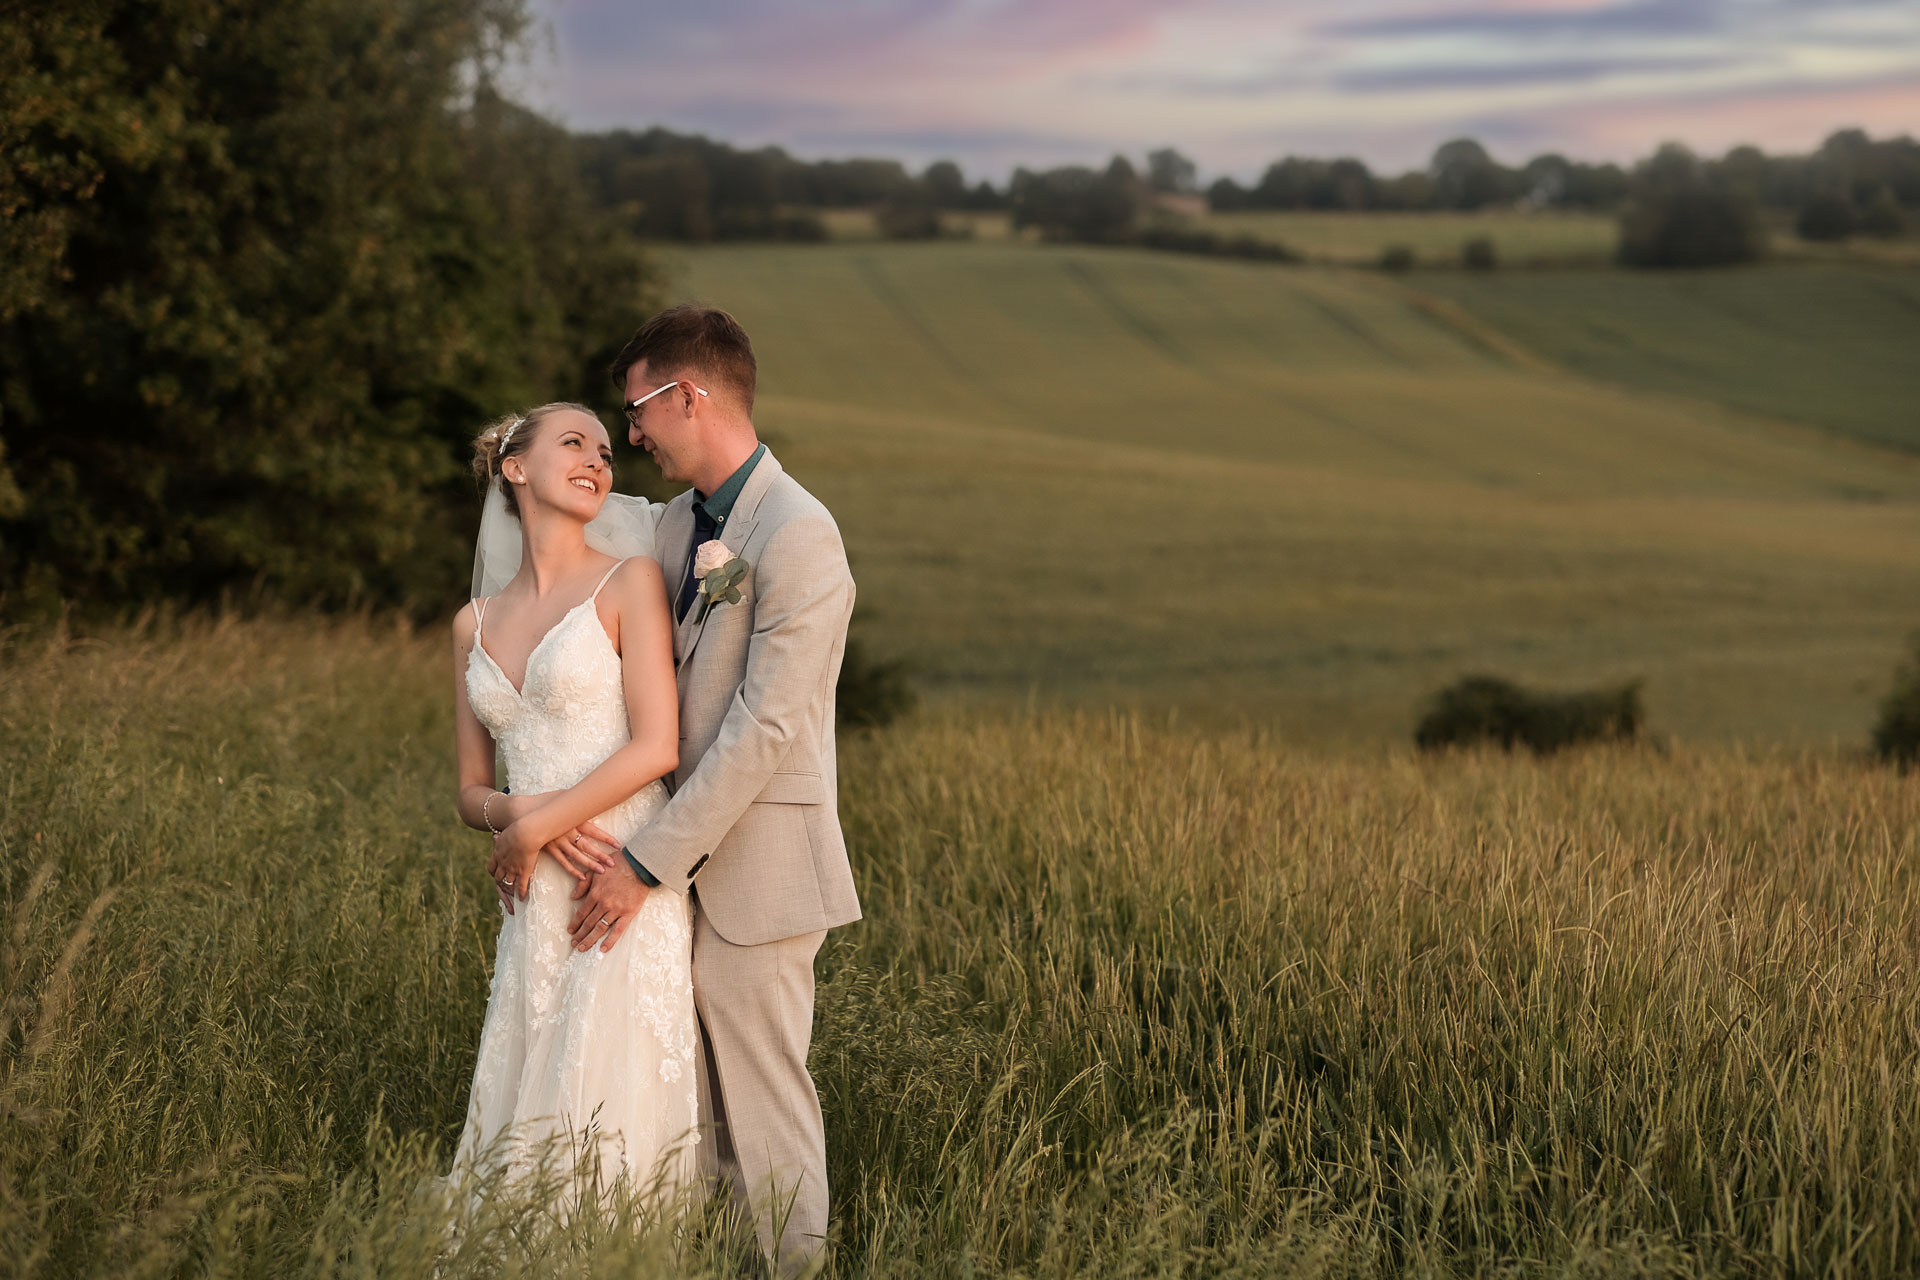 country wedding photo featuring bride and groom and a wheat field